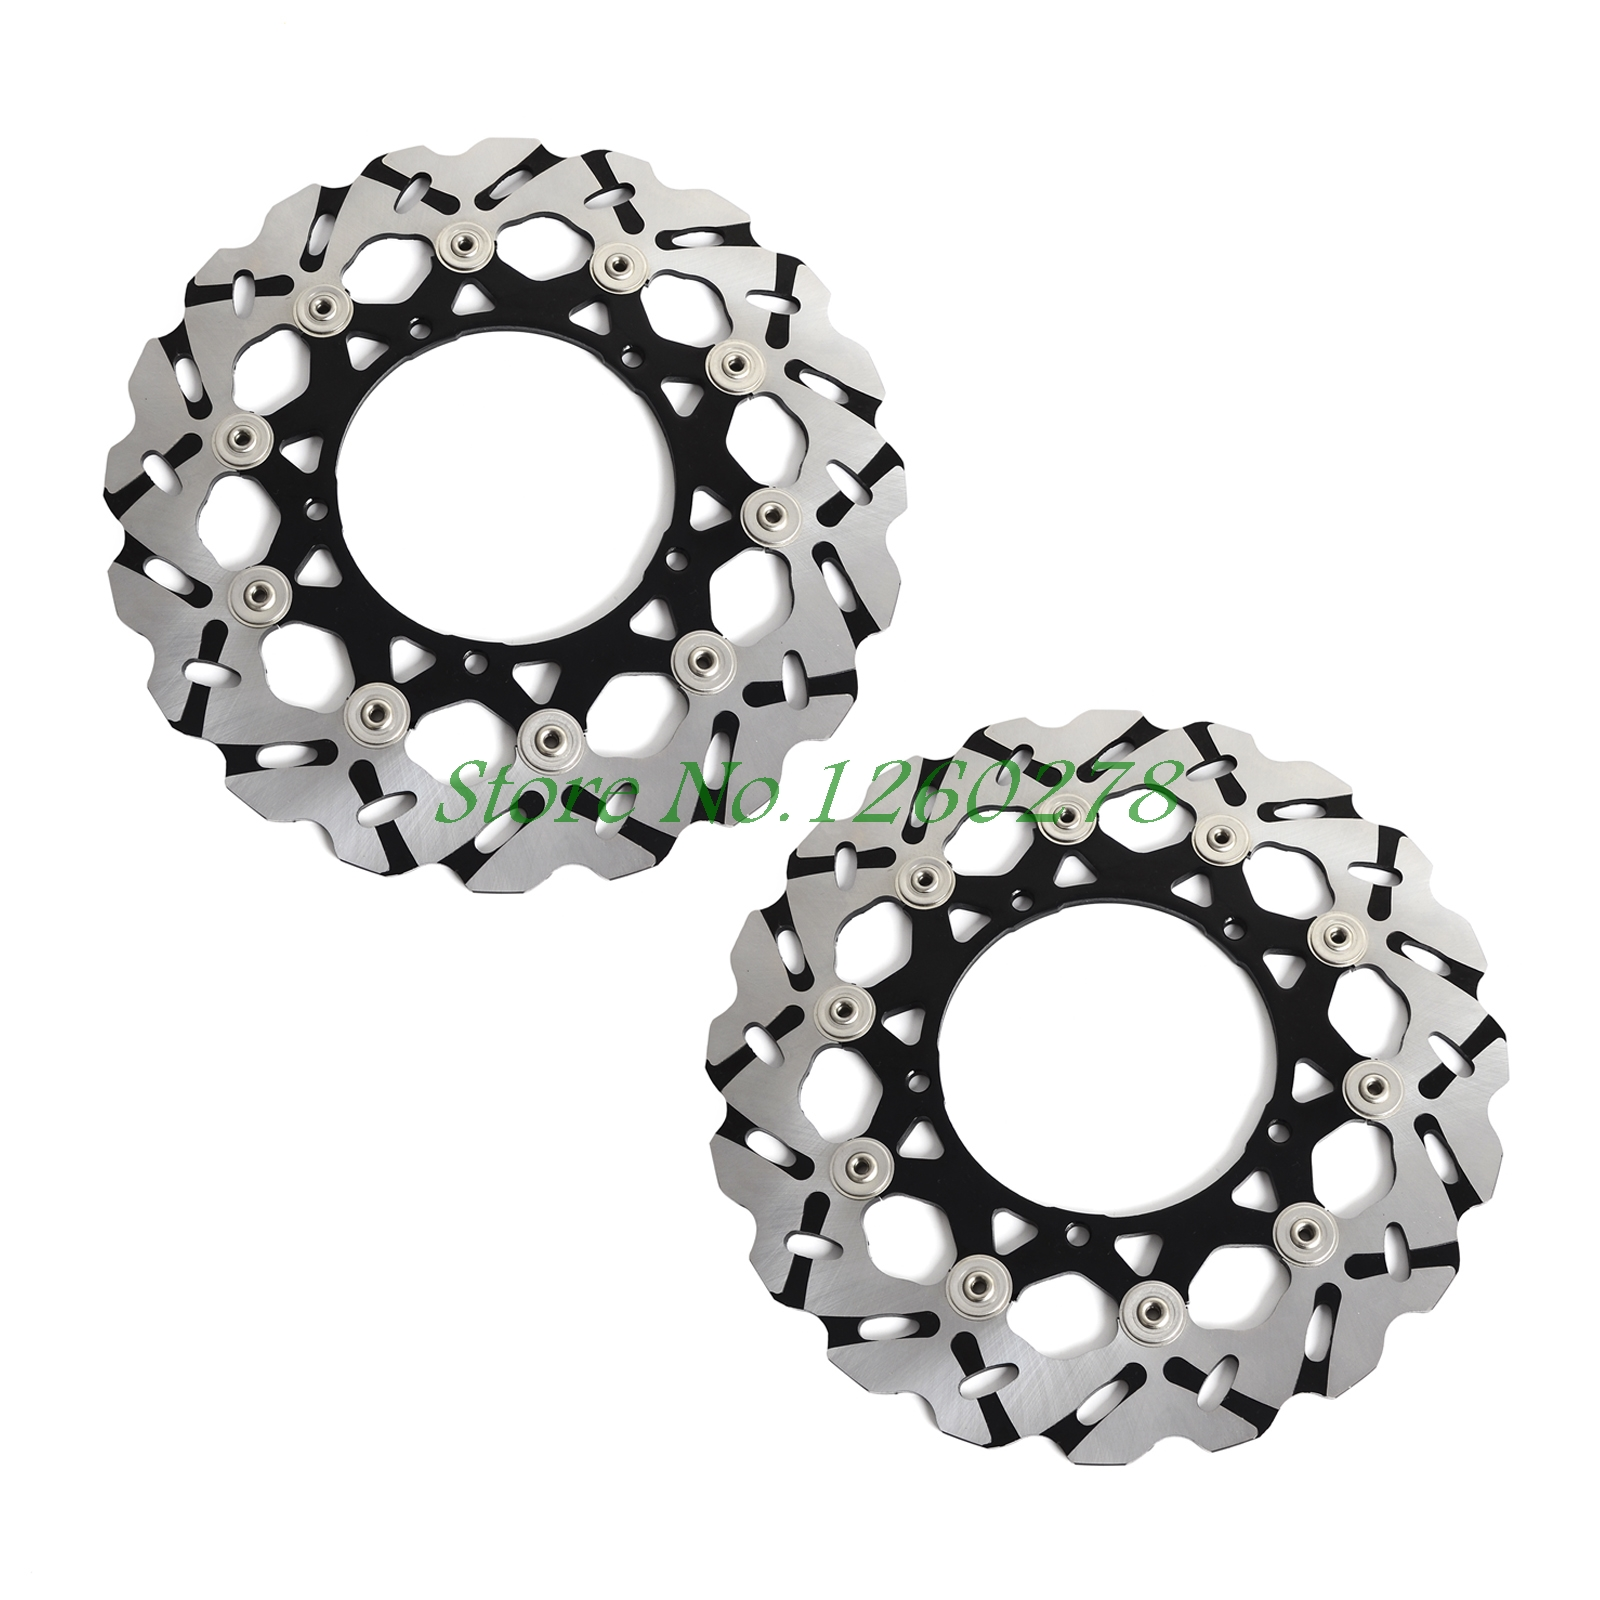 New Motorcycle Front Rotor Brake Disc For Yamaha V MAX 1700 2009 2010 2011 2012 2013 2014 2015 2016 new motorcycle front rotor brake disc for yamaha xp500 t max500 2008 2011 tmax500 530cc 2012 2014 xp530 2013 2014